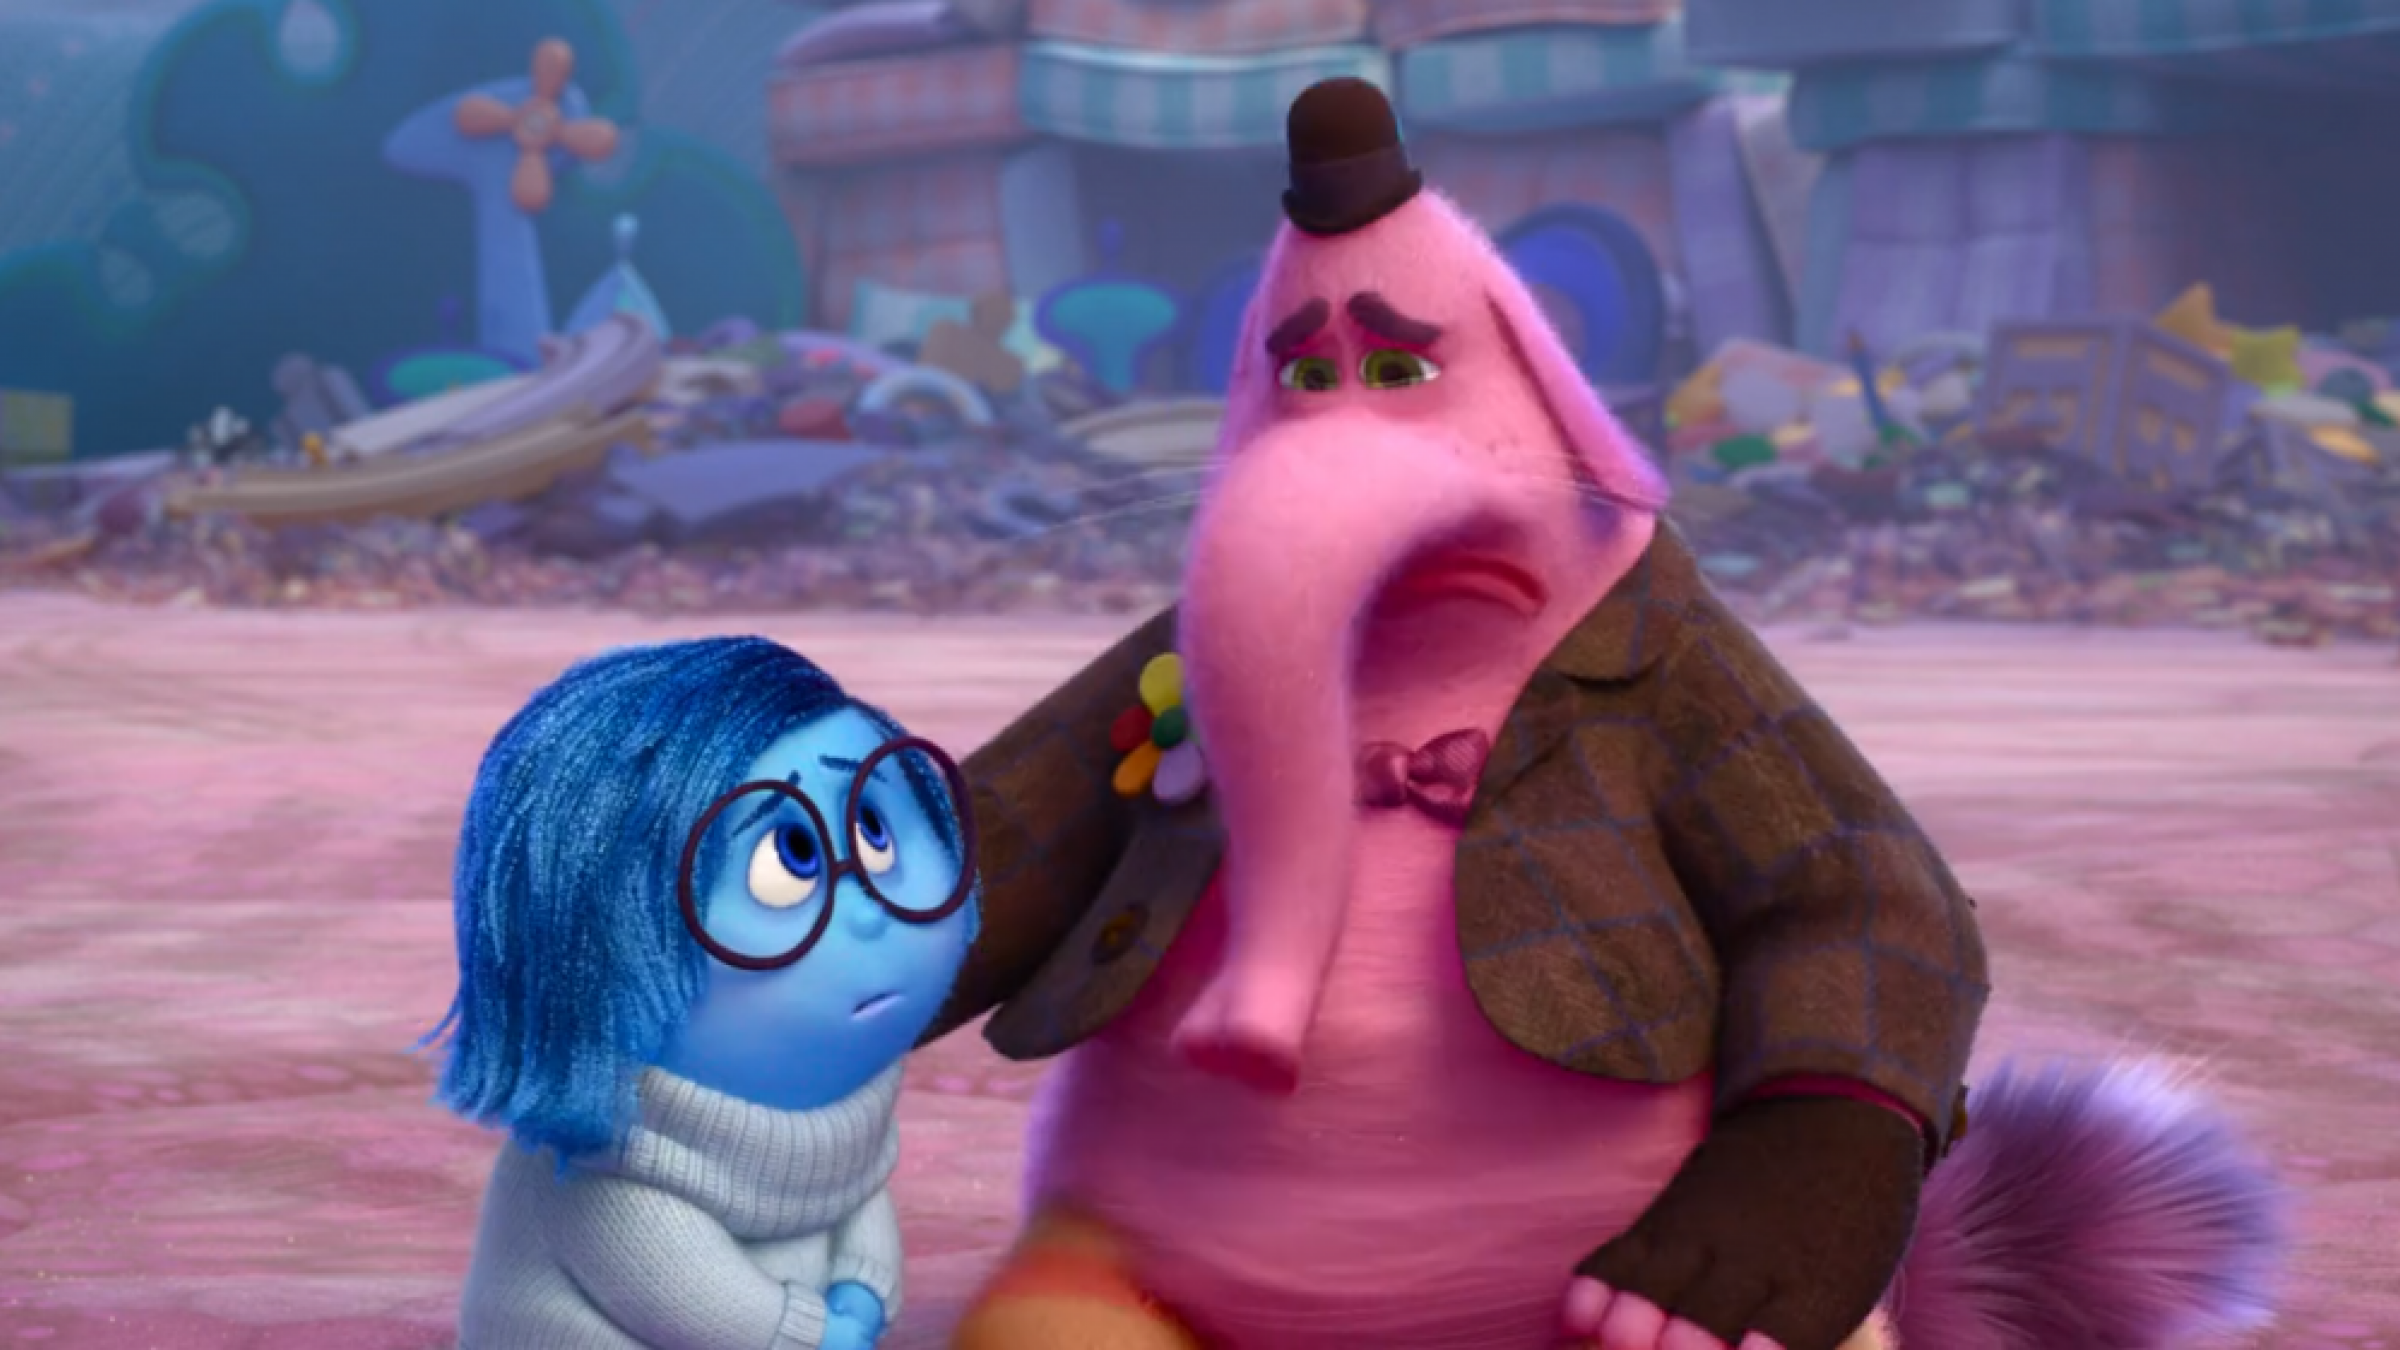 Here's a Lesson from Pixar on How to Choose Your Lenses